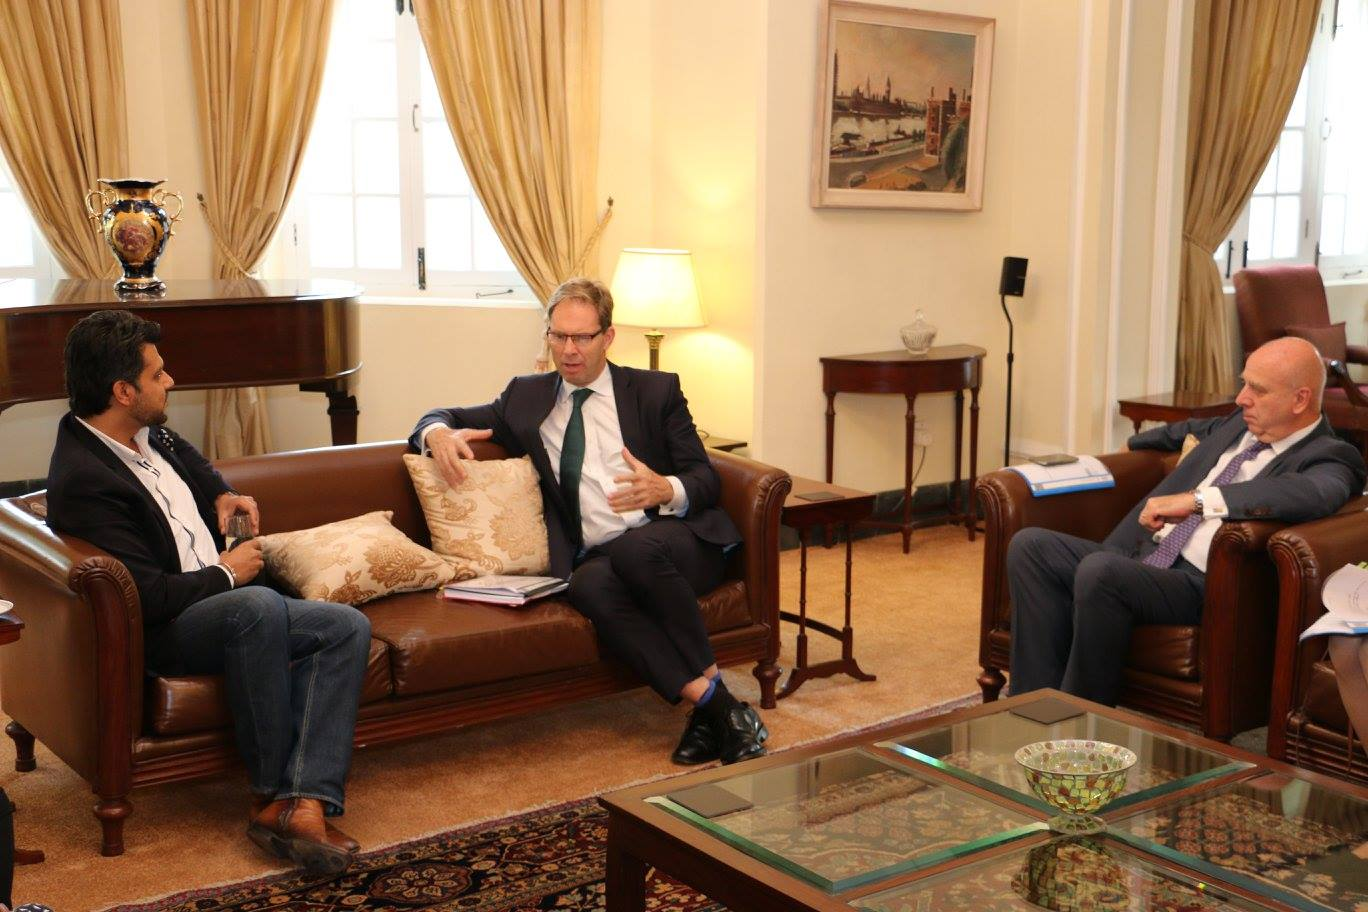 Mr. Tobias Ellwood - British Minister for Pakistan meets Faraz Khan at his recent visit to Pakistan